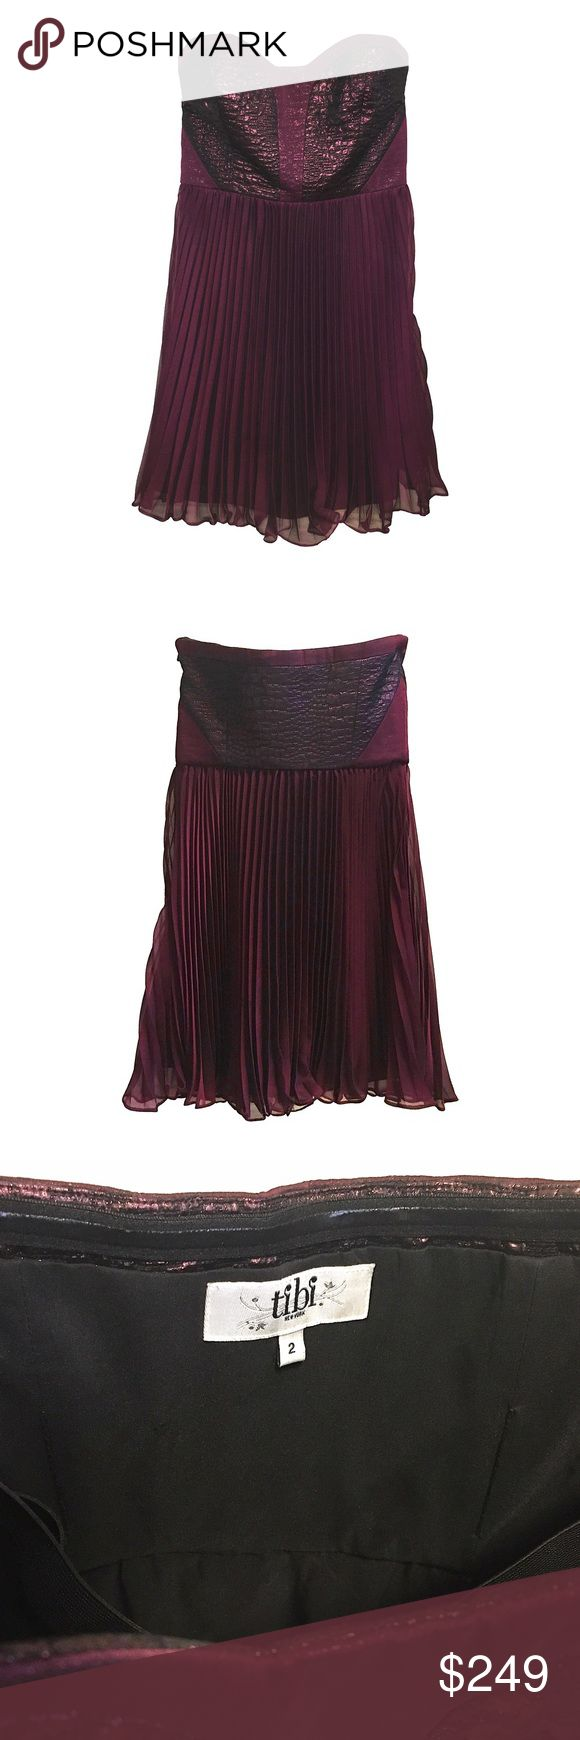 "Tibi Bond St. Strapless Plisse Mini Dress Tibi Bond St. Strapless Dress  This strapless dress features organza overlays and boning at the quilted lamé bodice. Sweetheart neckline and accordion-pleated skirt. Hidden side zip and built-in bra strap. Fully Lined.  - Plum croc-embossed metallic jacquard bodice with satin skirt - 22"" long, measured from center back - Strapless sweetheart neckline - Empire waist - Smooth V panels cinch in waist - A-line plisse skirt - Fabrication: Lamé/organza…"